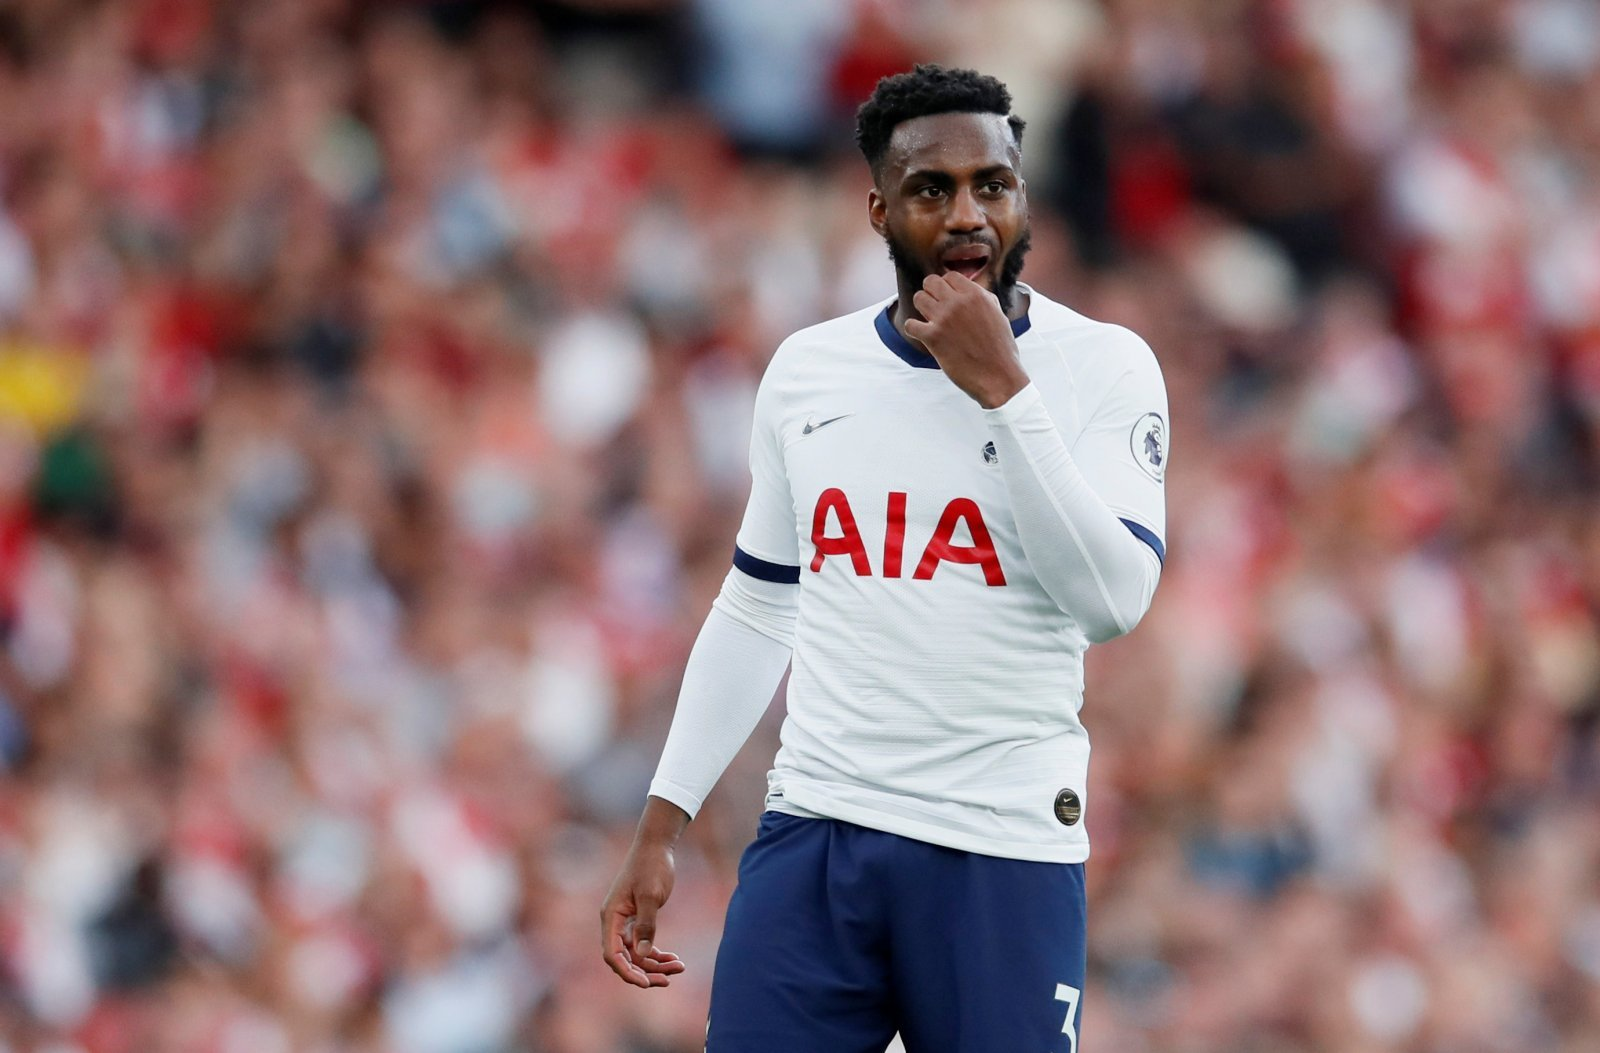 Tottenham Hotspur: Fans believe Danny Rose is the player to have complained about Mauricio Pochettino's training methods